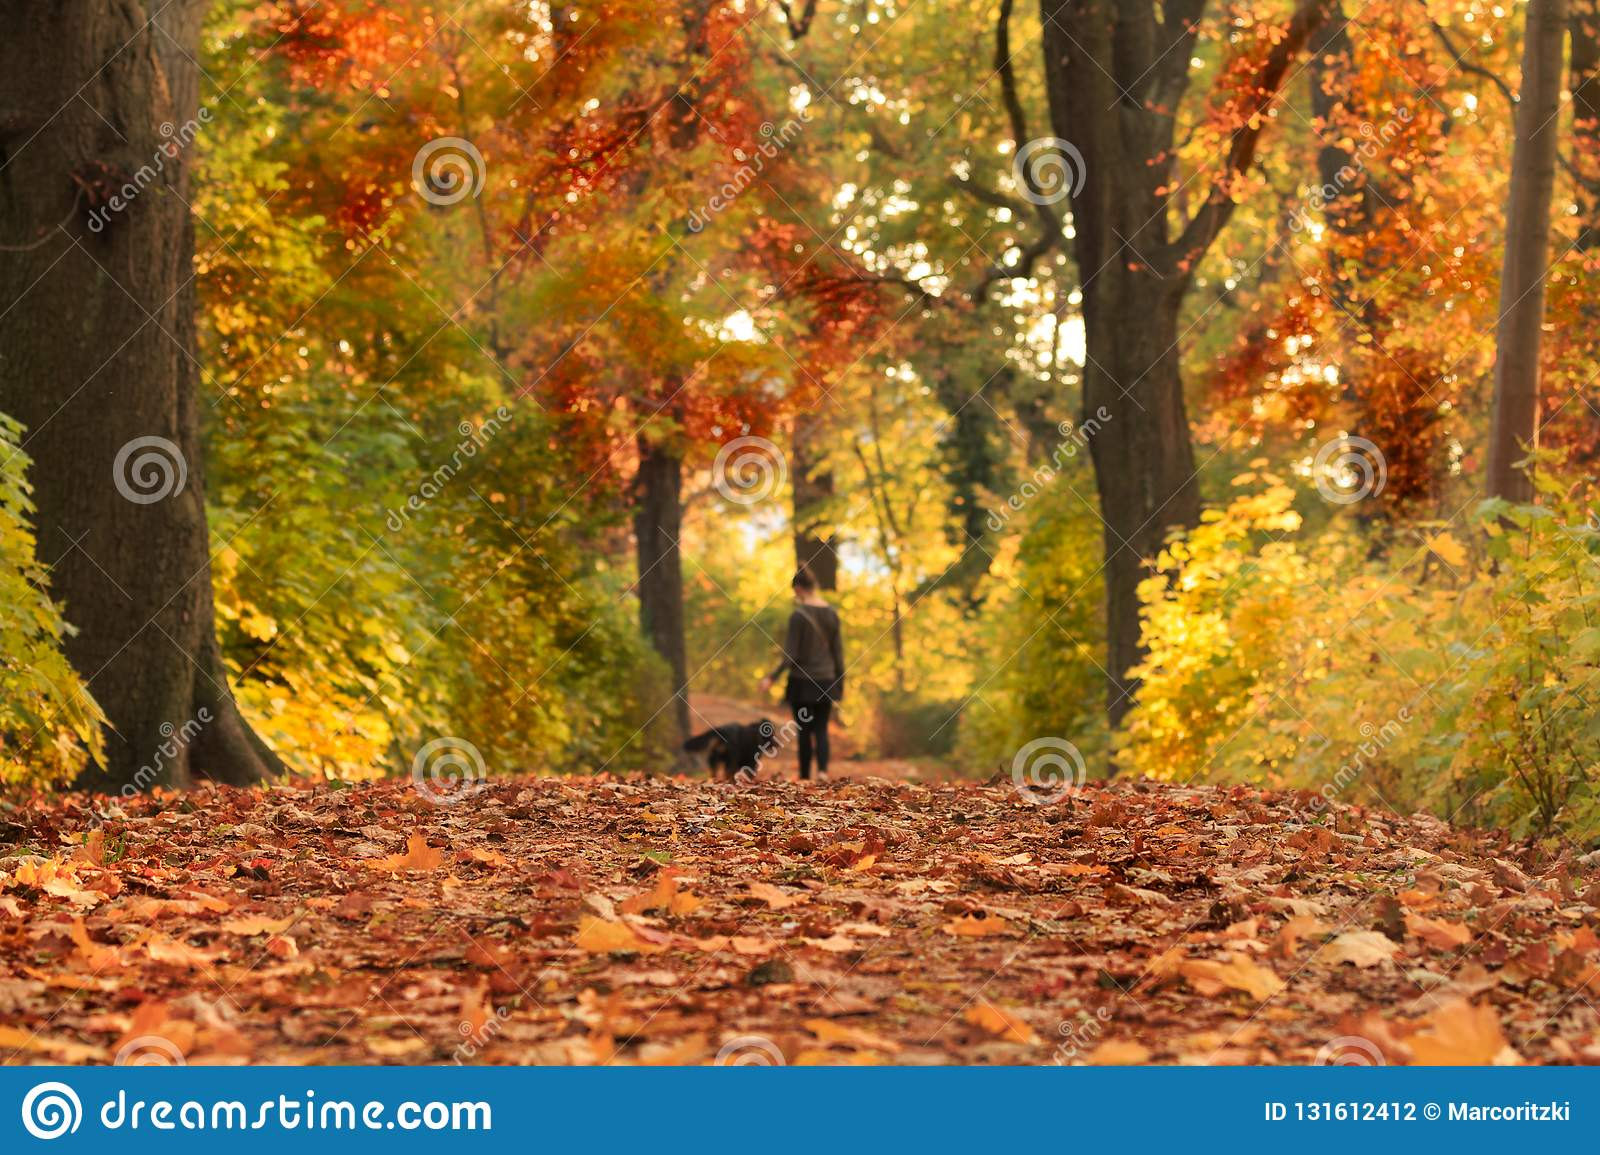 Autumn path with colored leaves